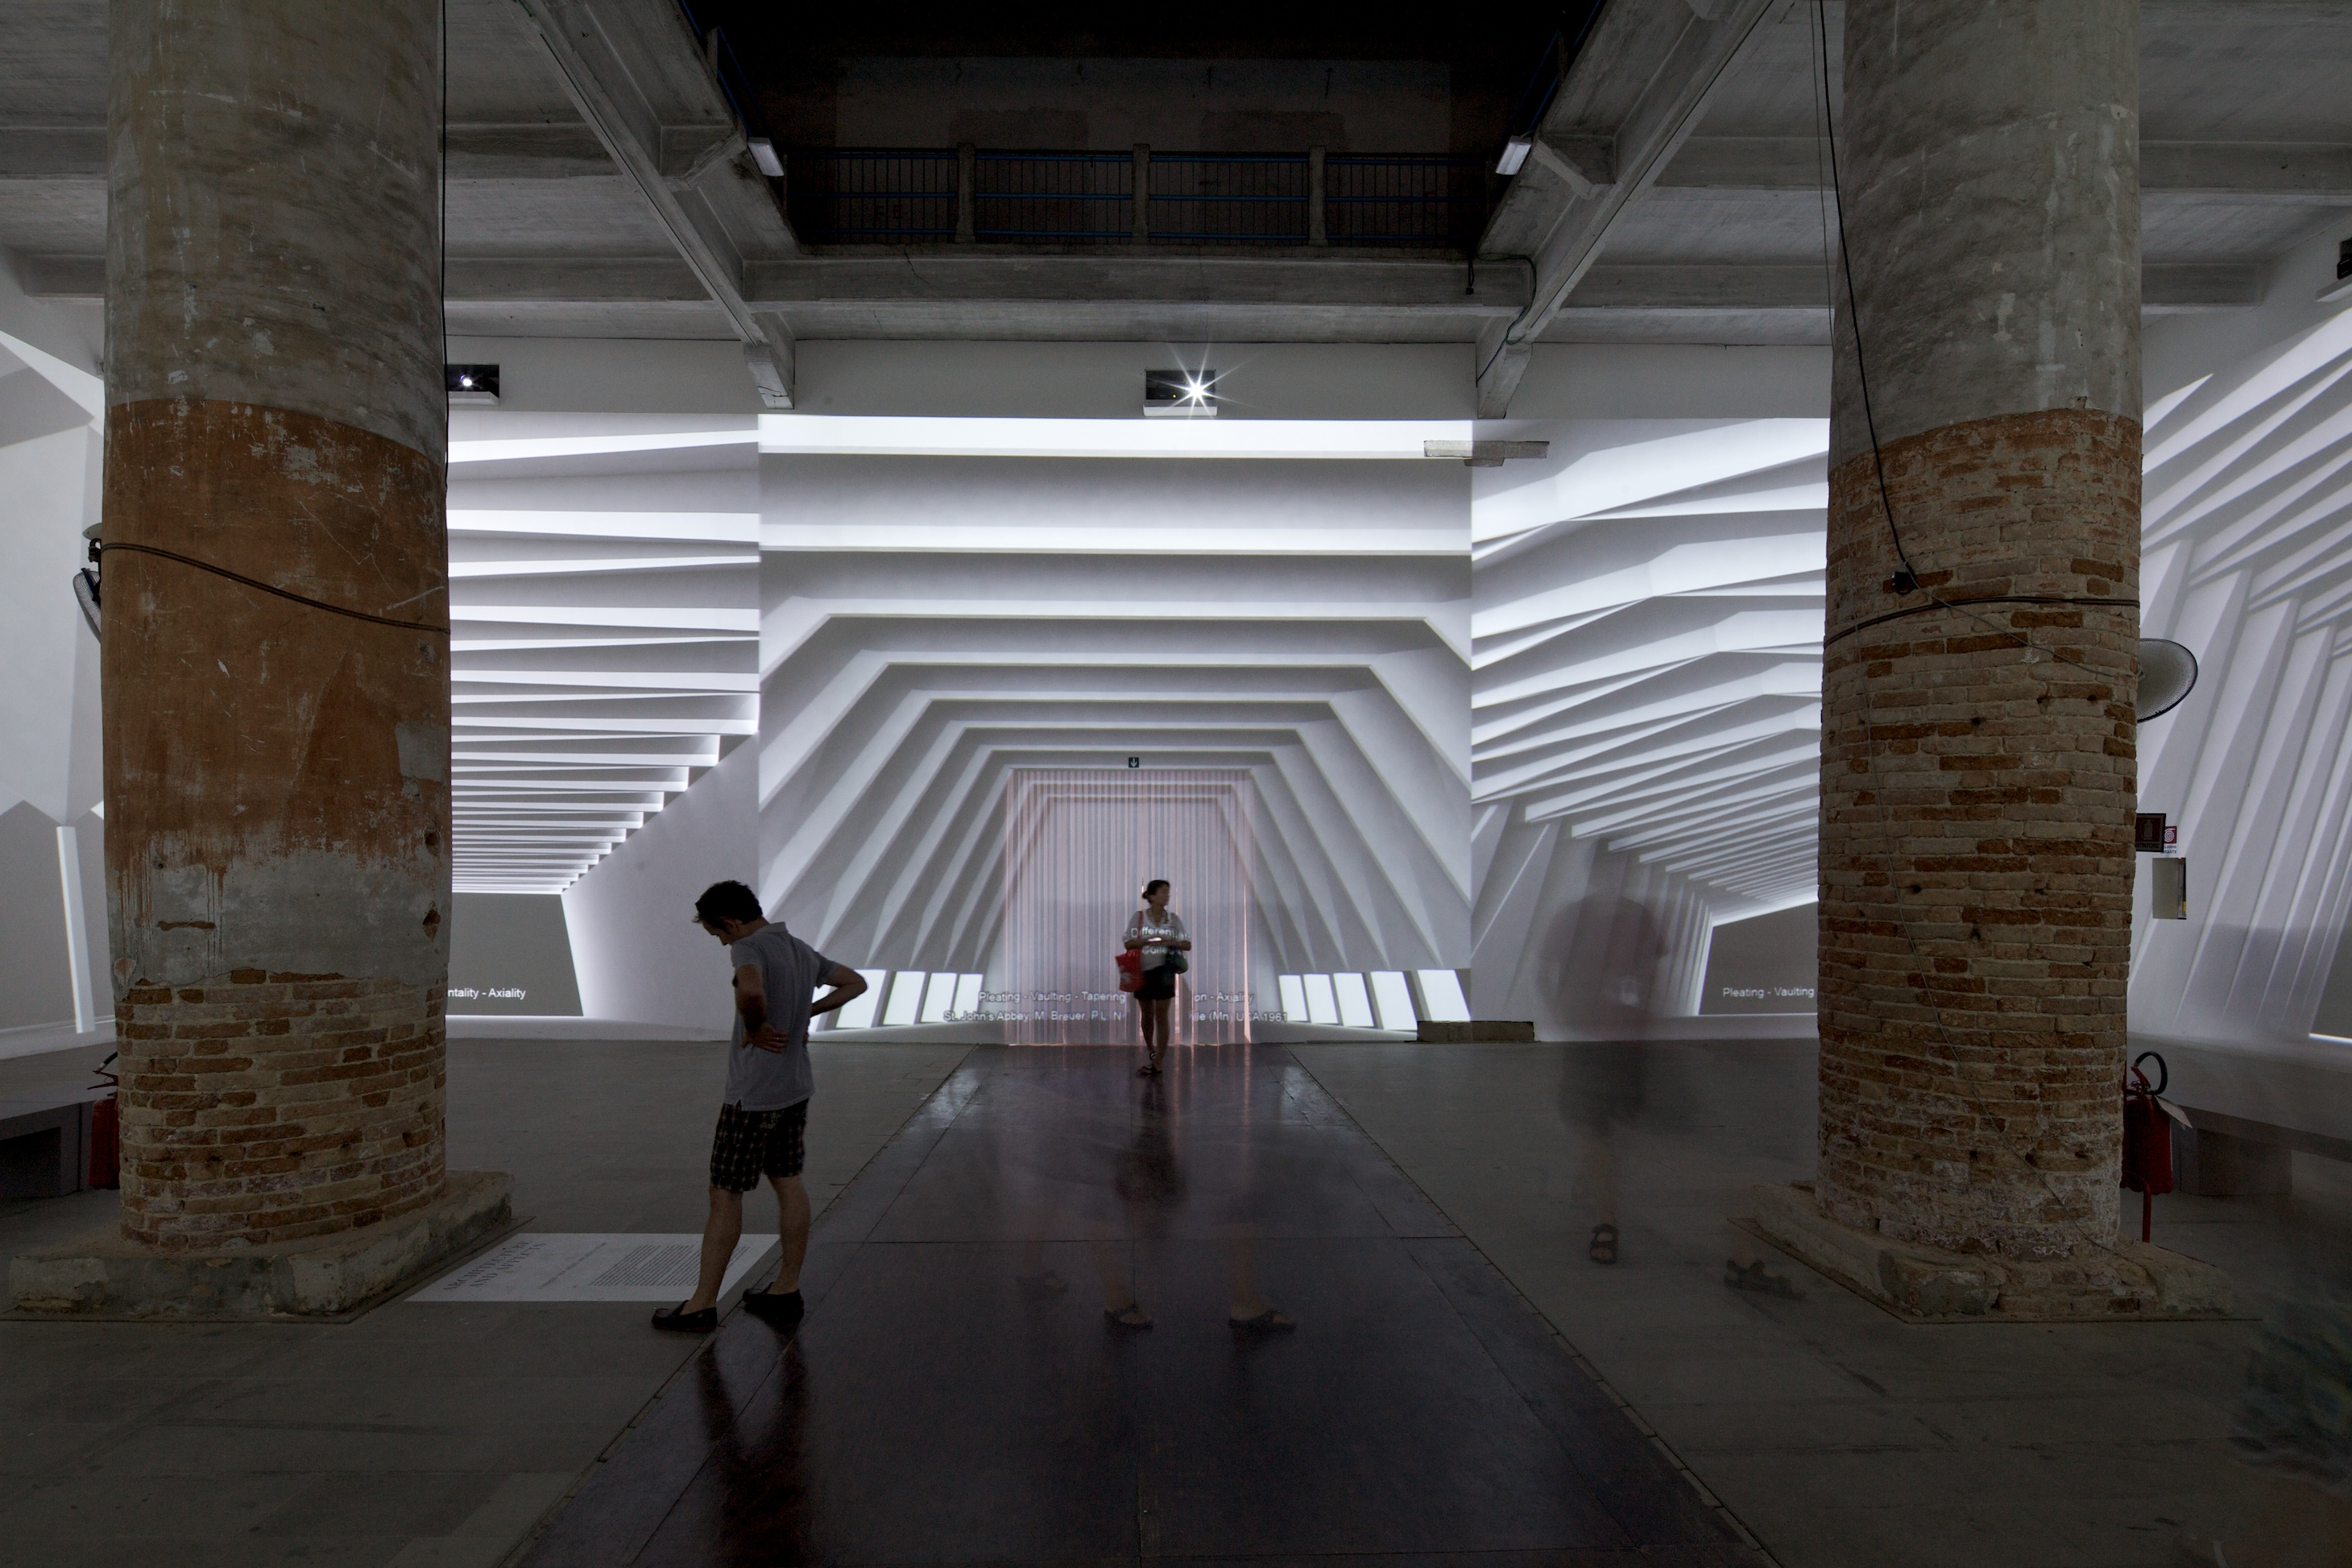 Bienal de Veneza 2012: 'Architecture and its Affects' / Farshid Moussavi, © Nico Saieh